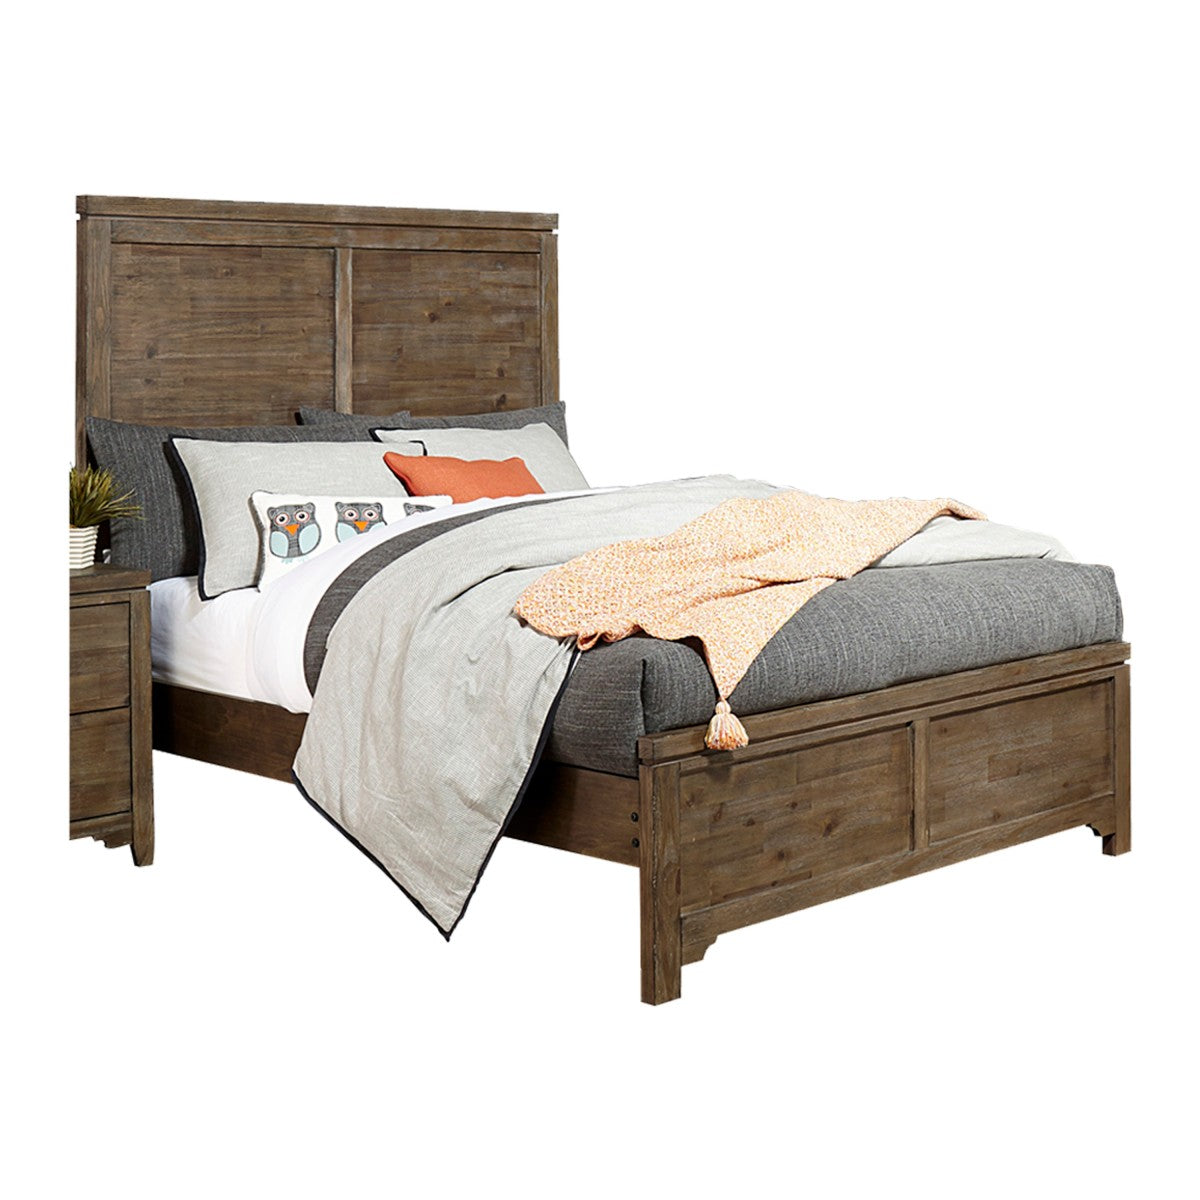 Homelegance Lyer Brown Wood Finish Queen Bed